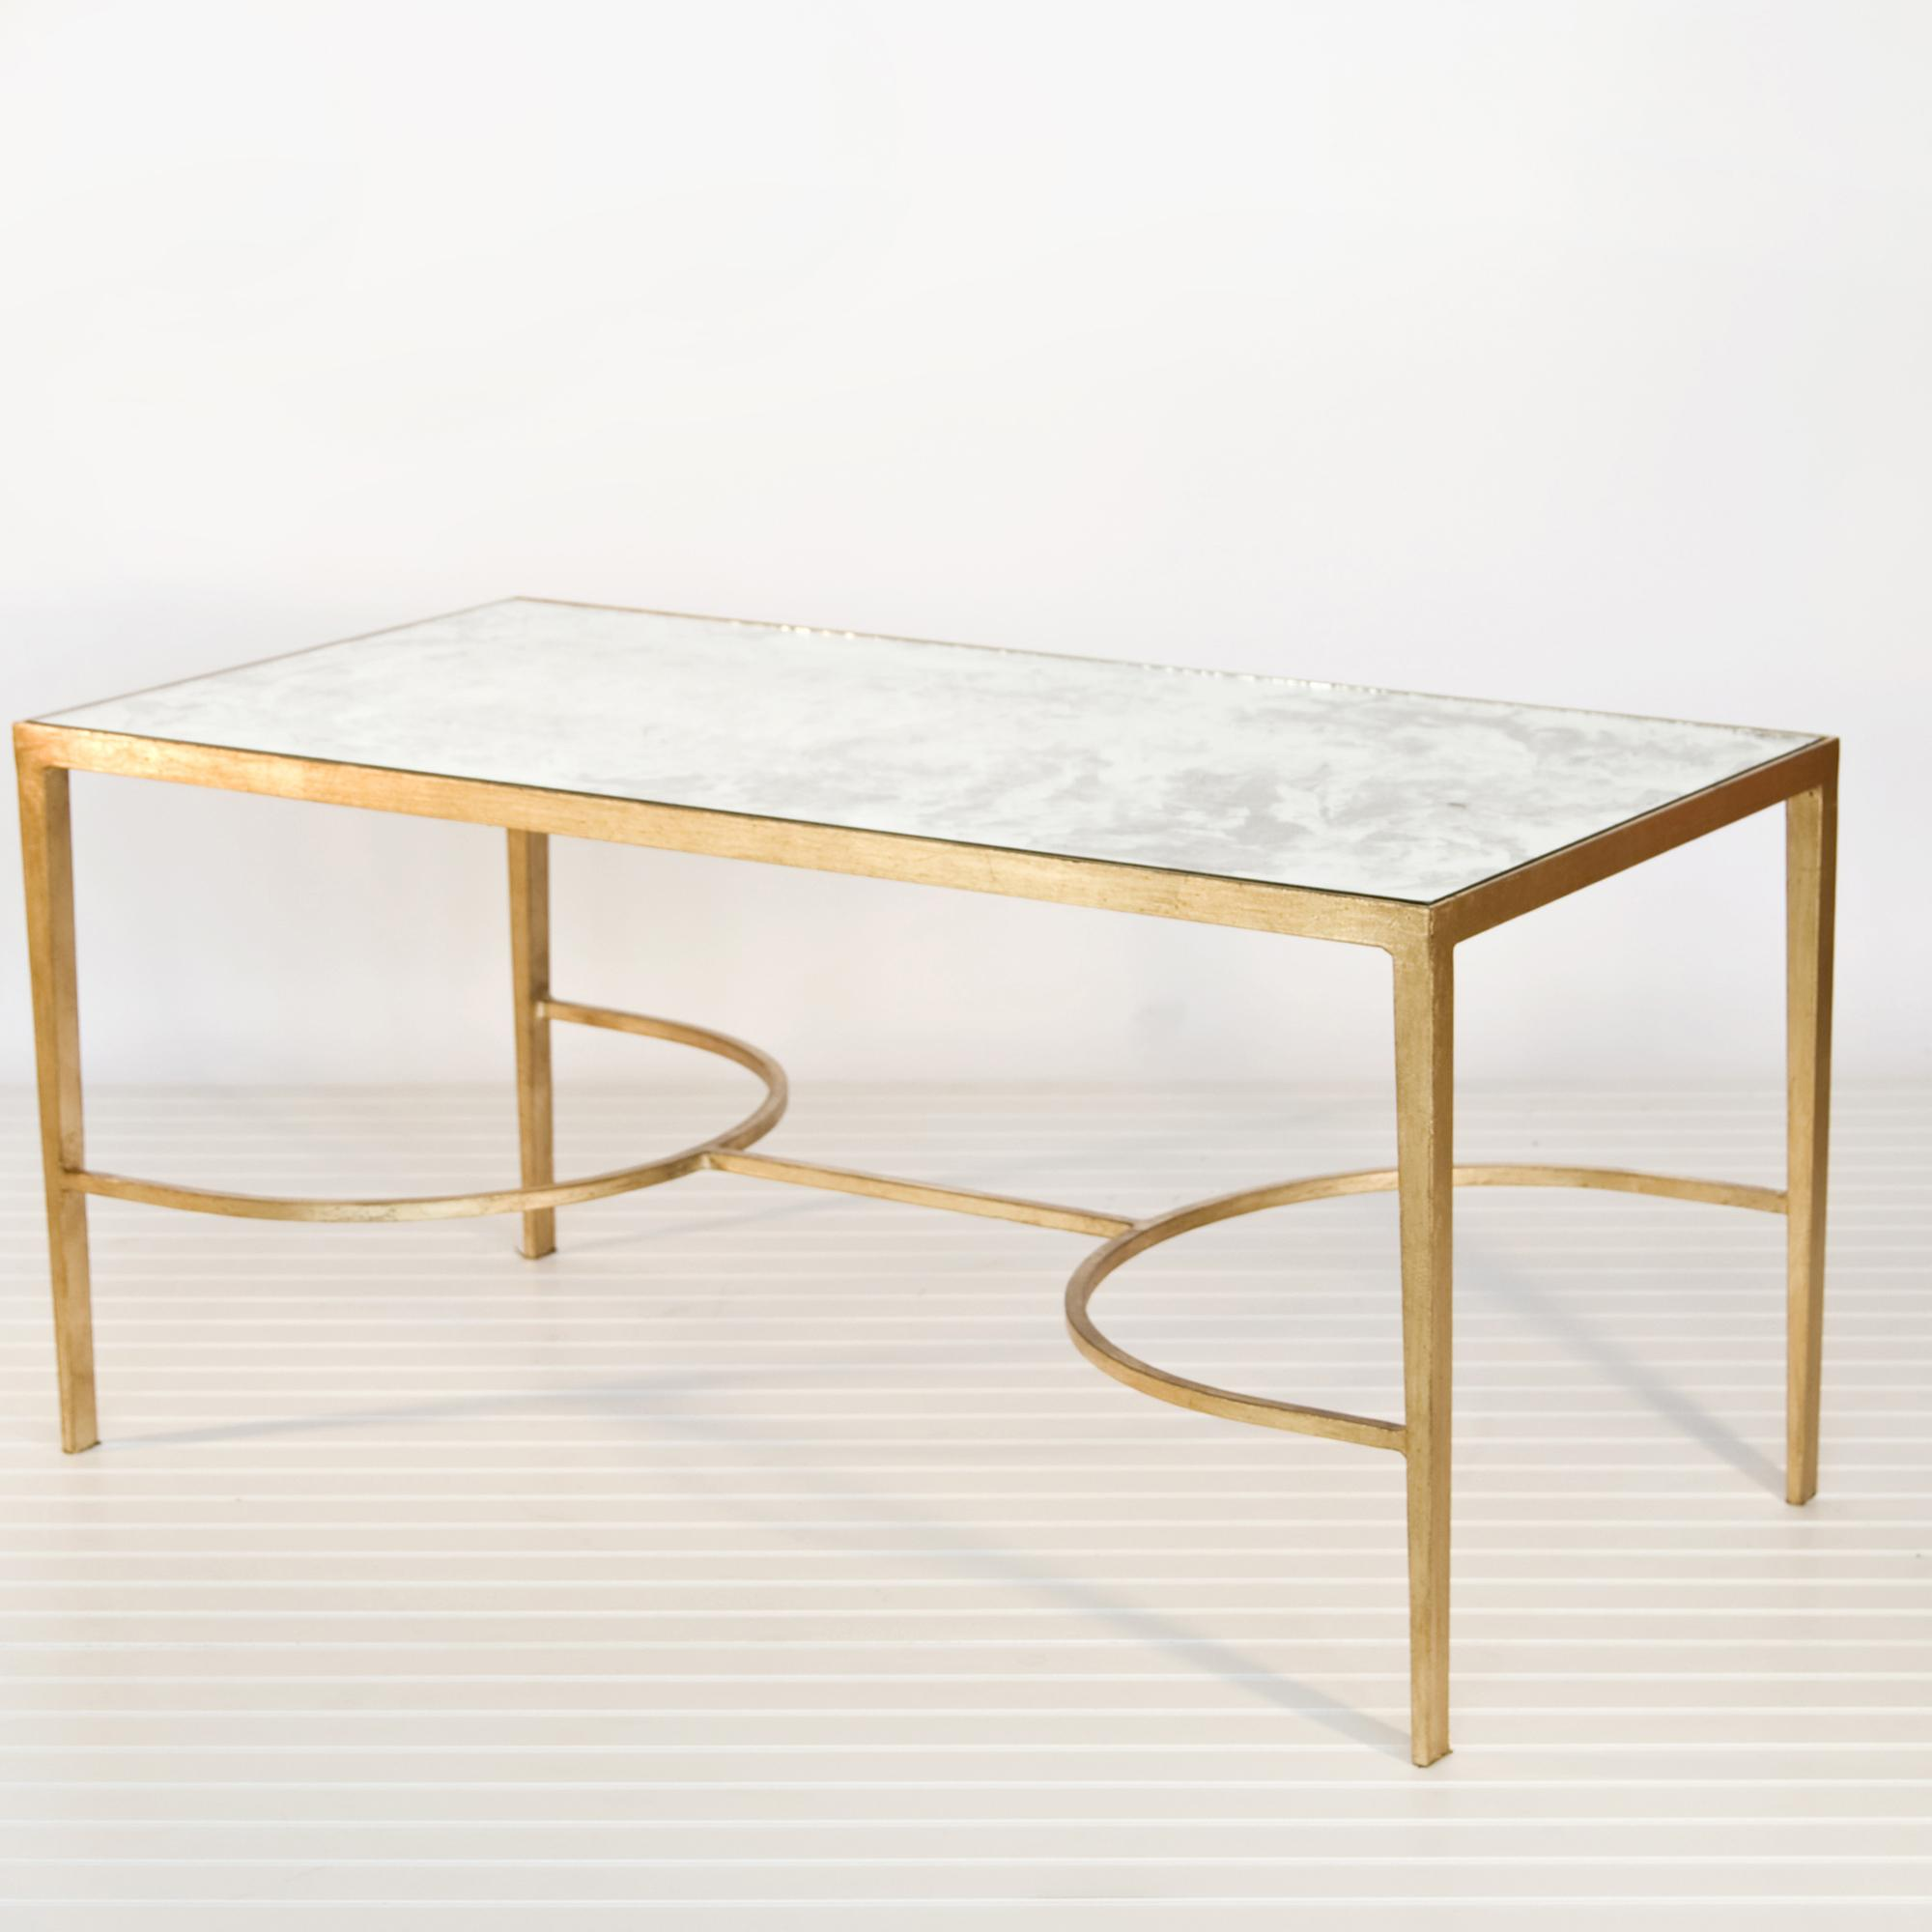 2017 Best of Glass Gold Coffee Table